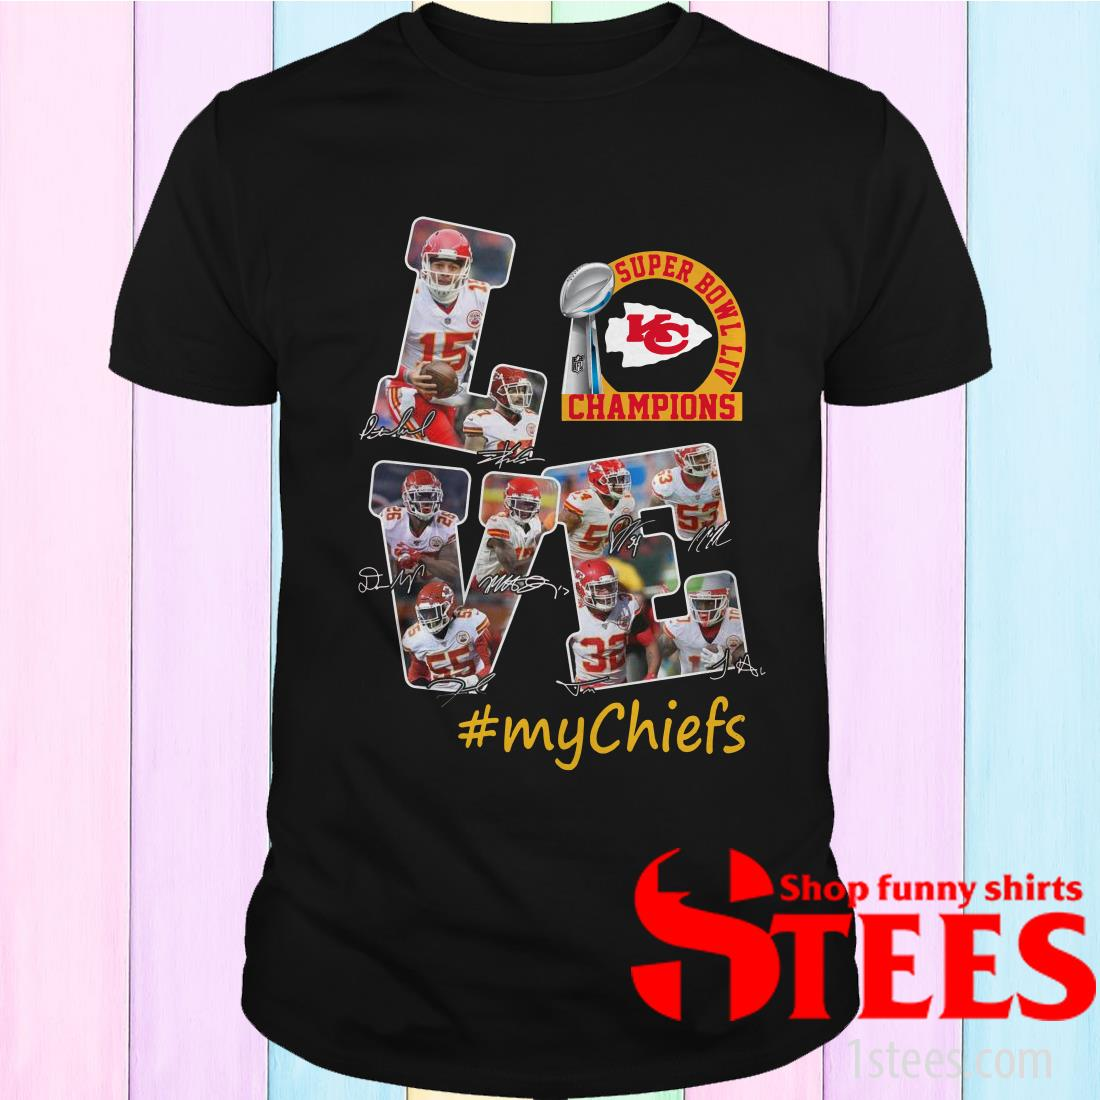 Super Bowl LIV Champions Love #My Chiefs Signature Shirt